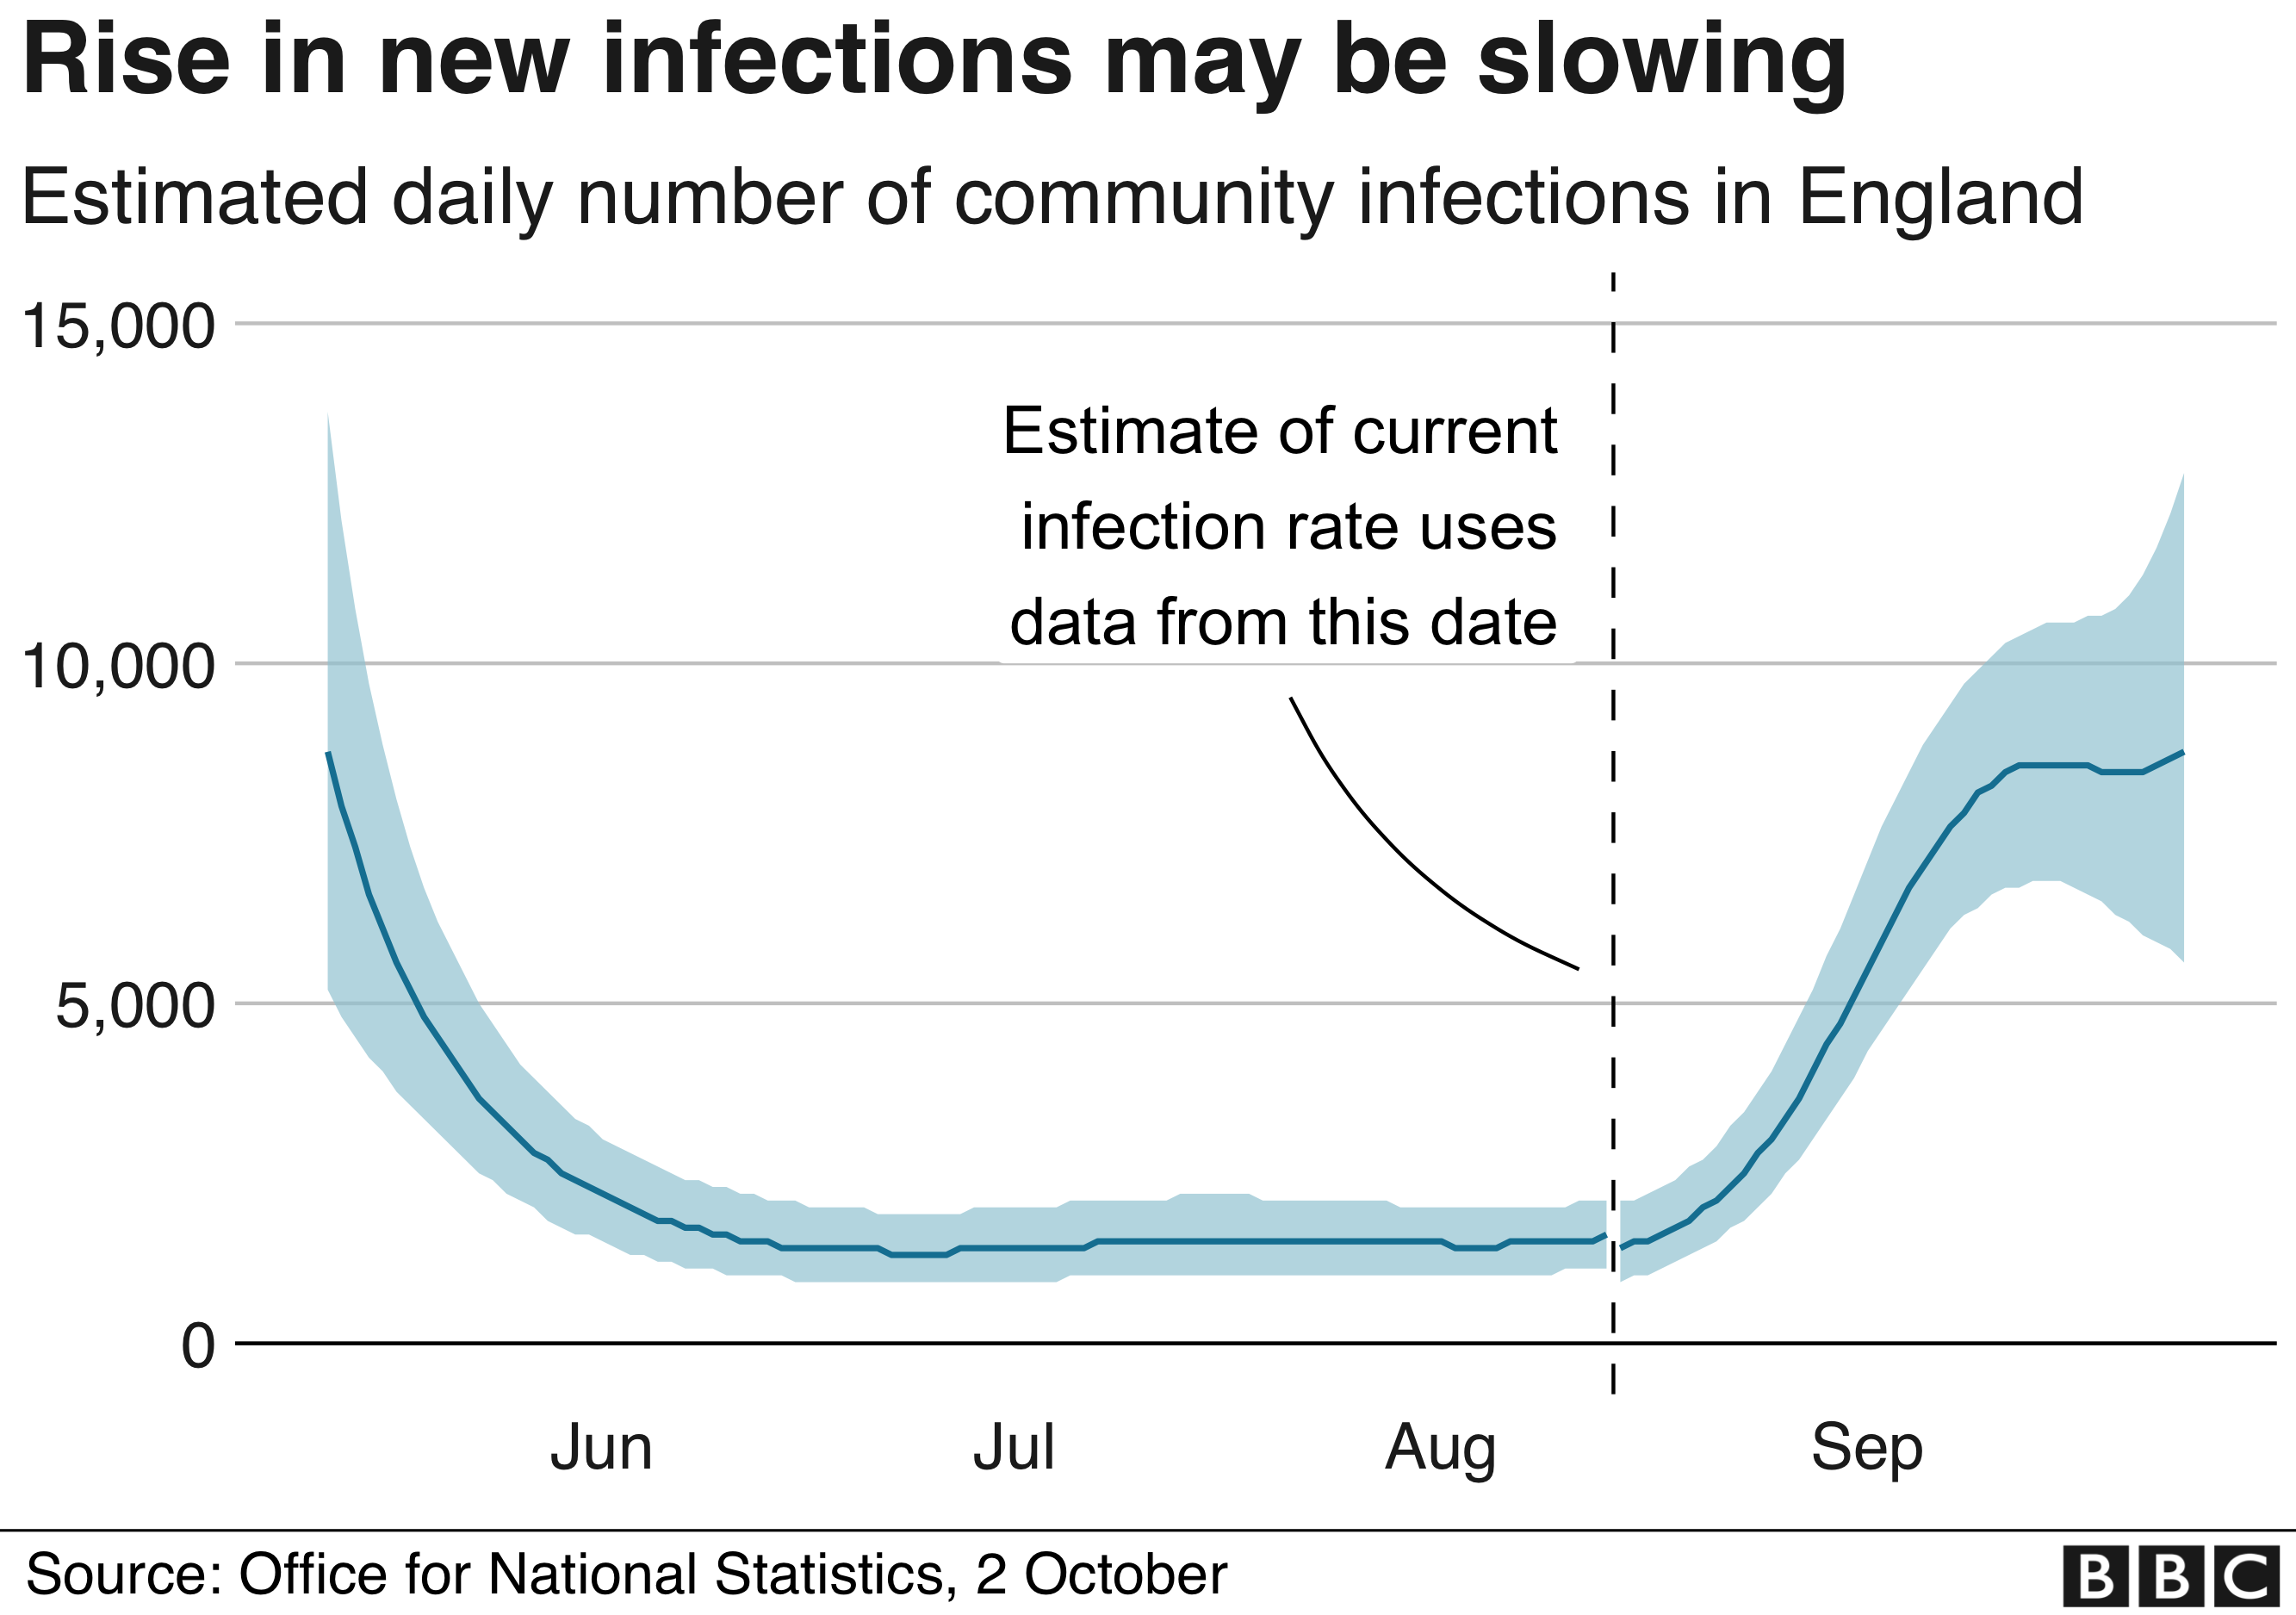 Rise in new infections may be slowing